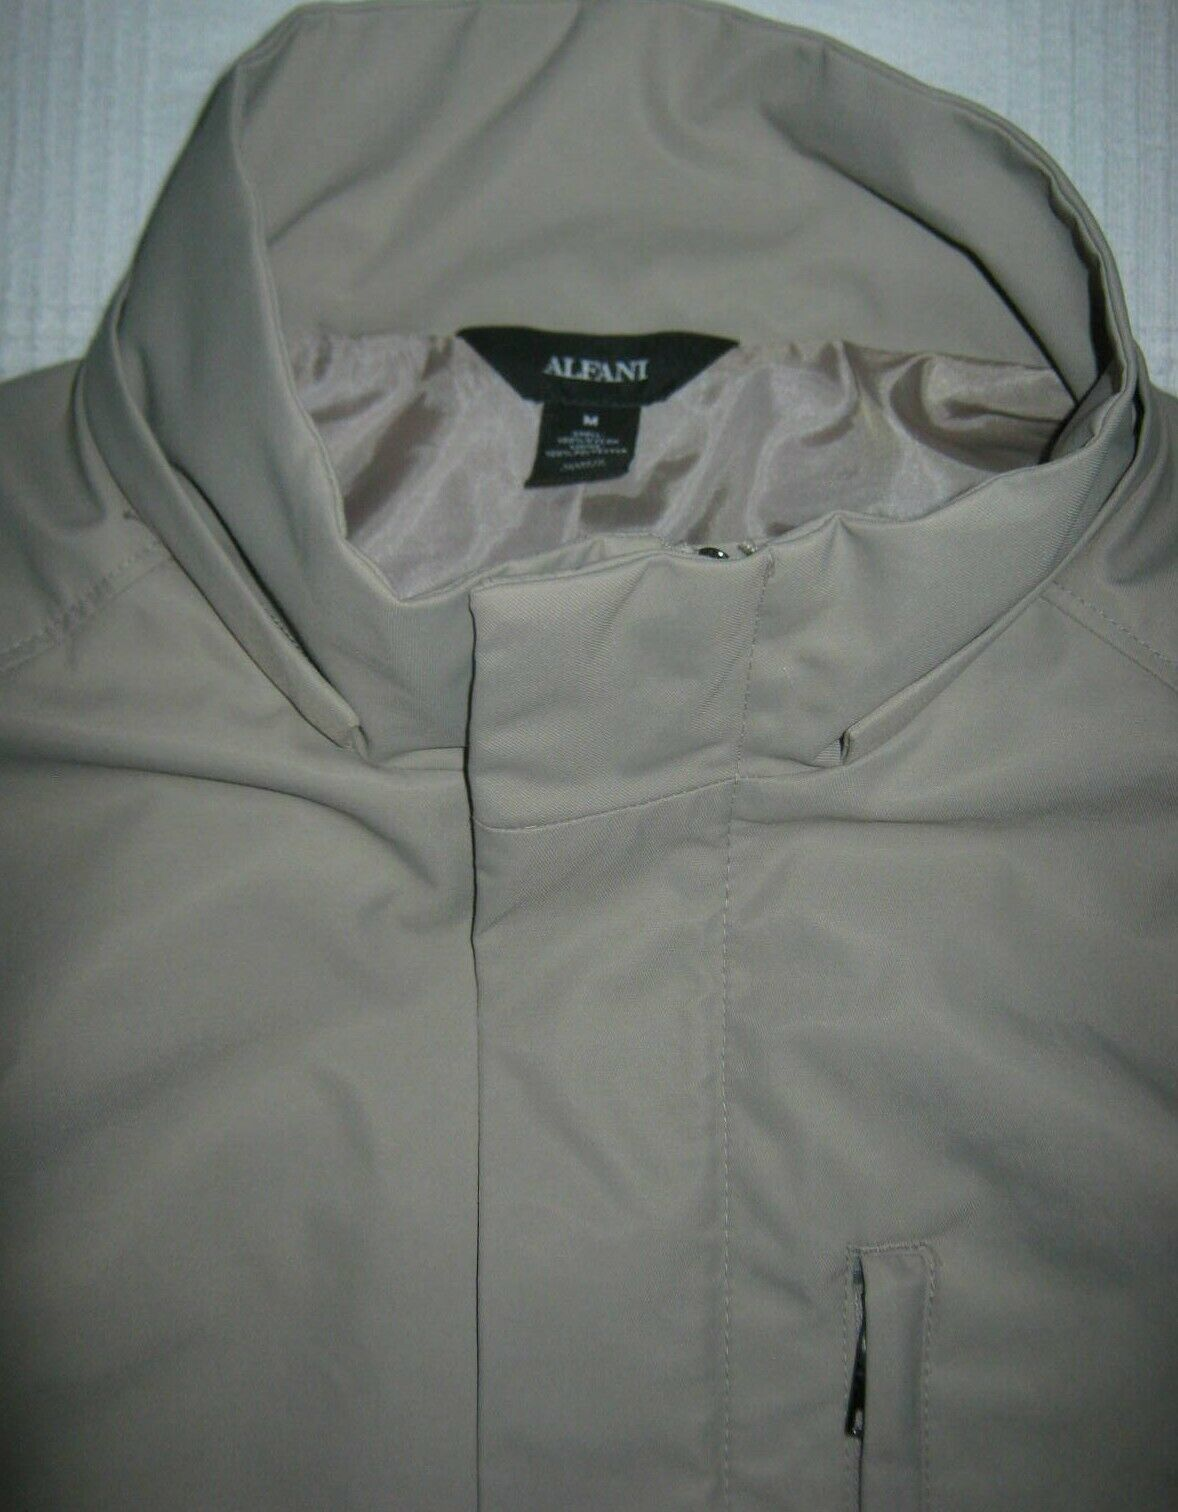 Alfani Mens Full-Zip Jacket with Removable Hood NWT Stand Collar Snap Closures M